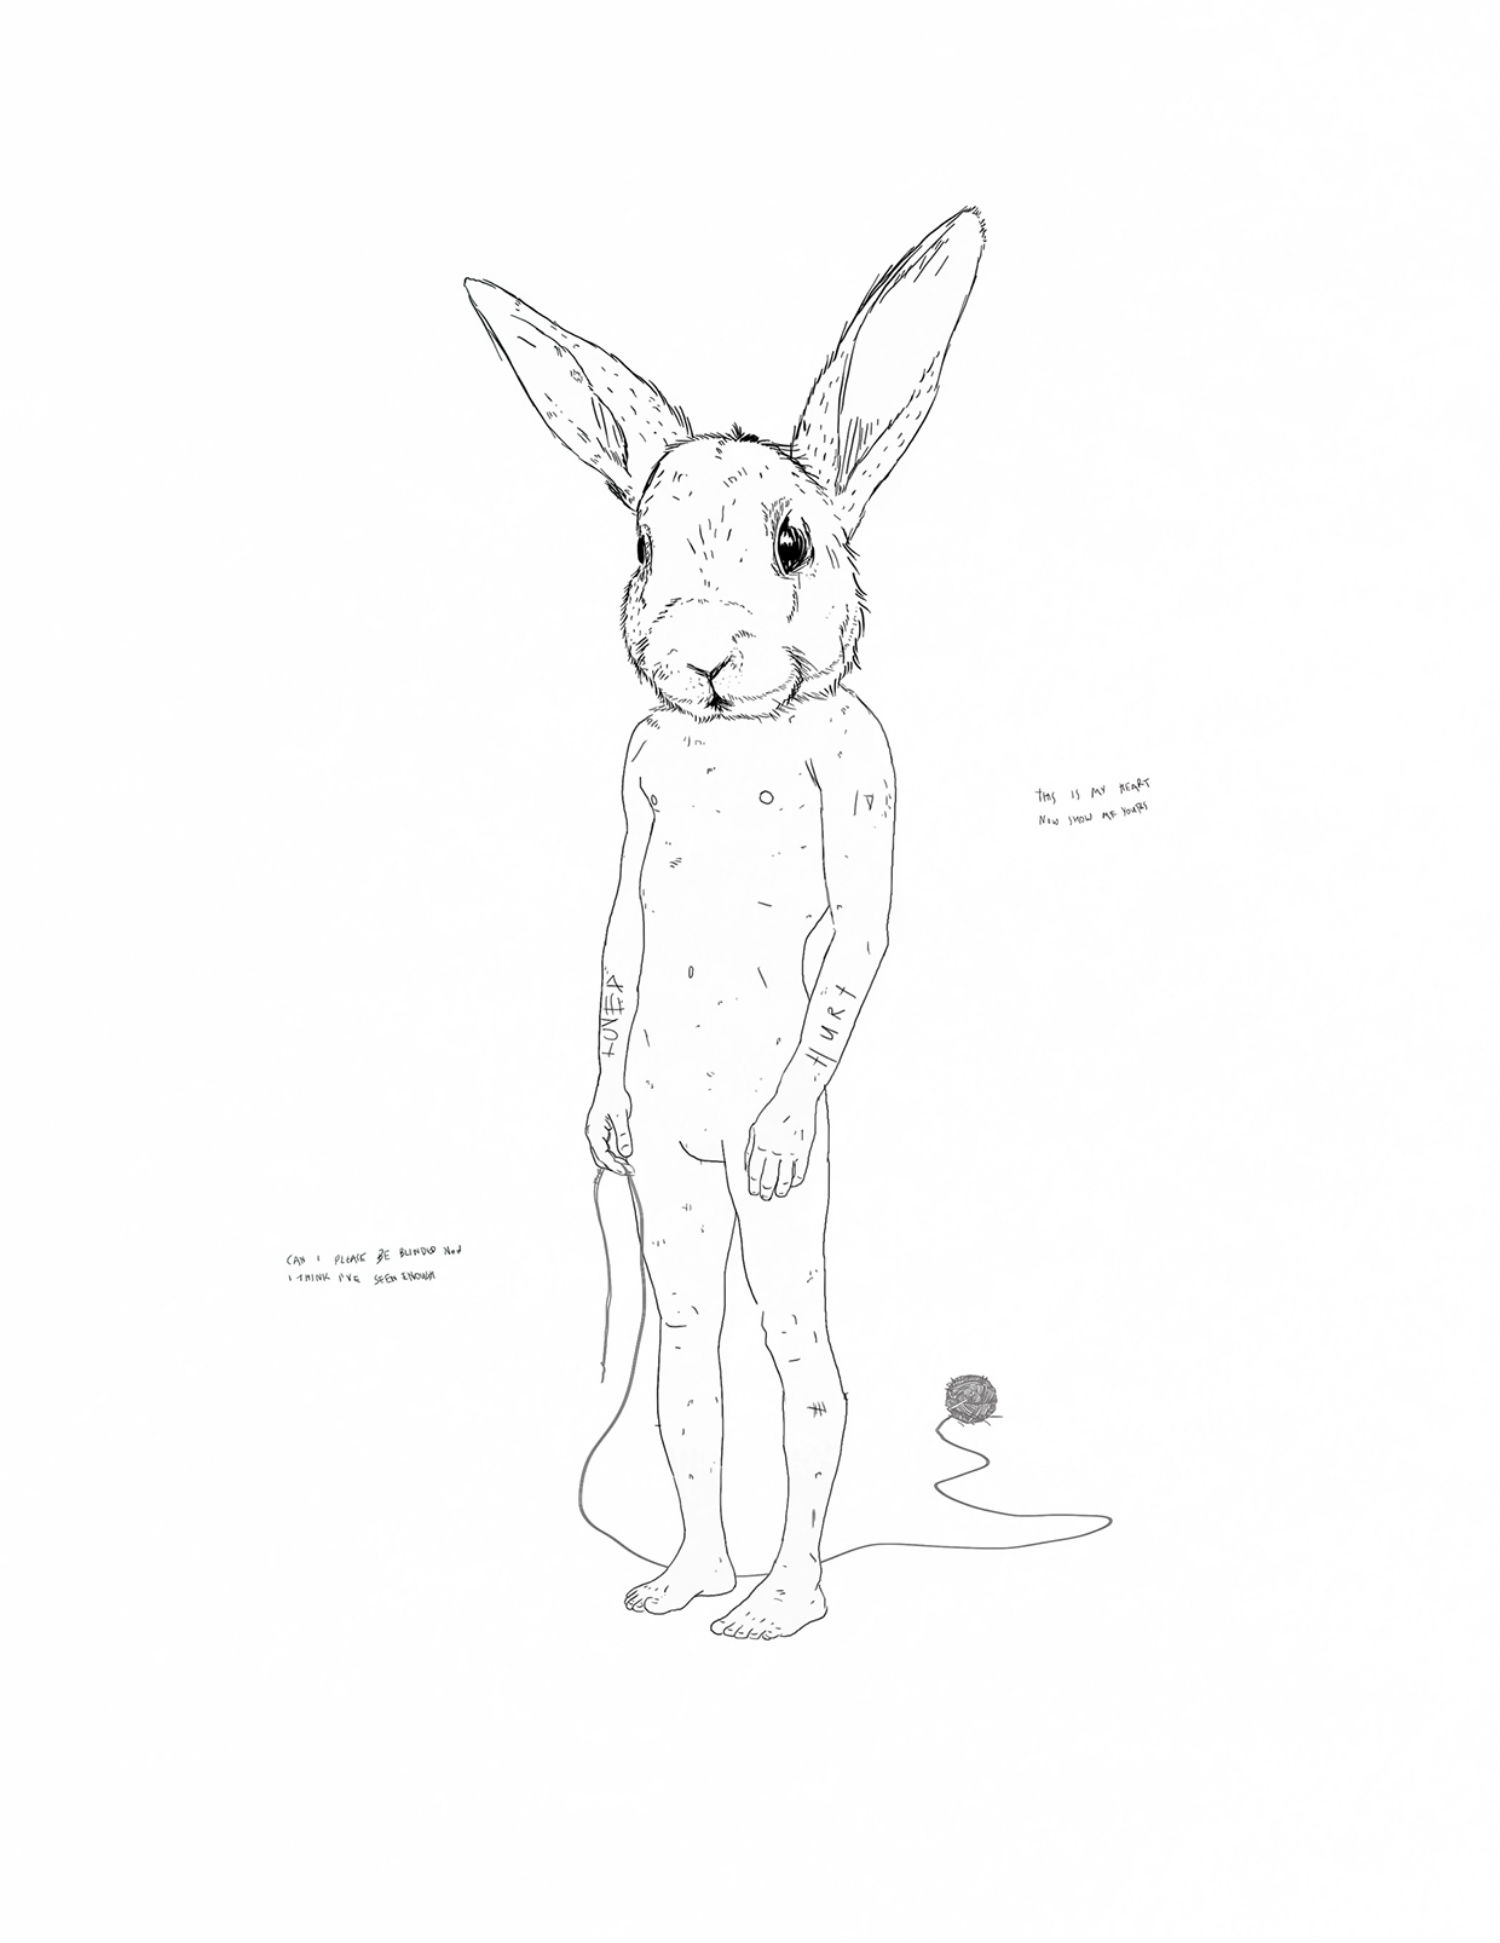 constantinos chaidalis illustration nude quirky bunny